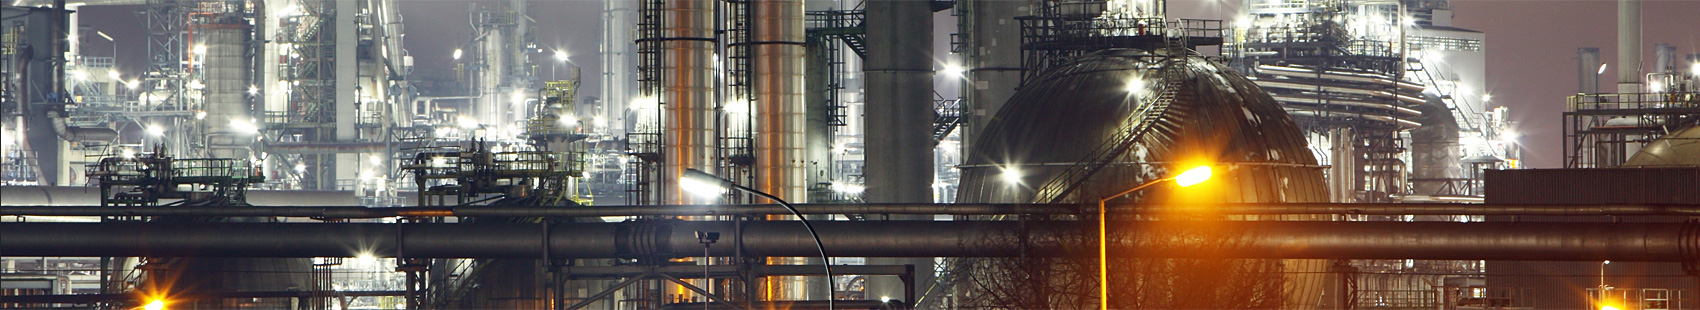 Membranes in Separations: Commercial Advances in Refinery, Petrochemical/Chemical and Industrial Gases Applications